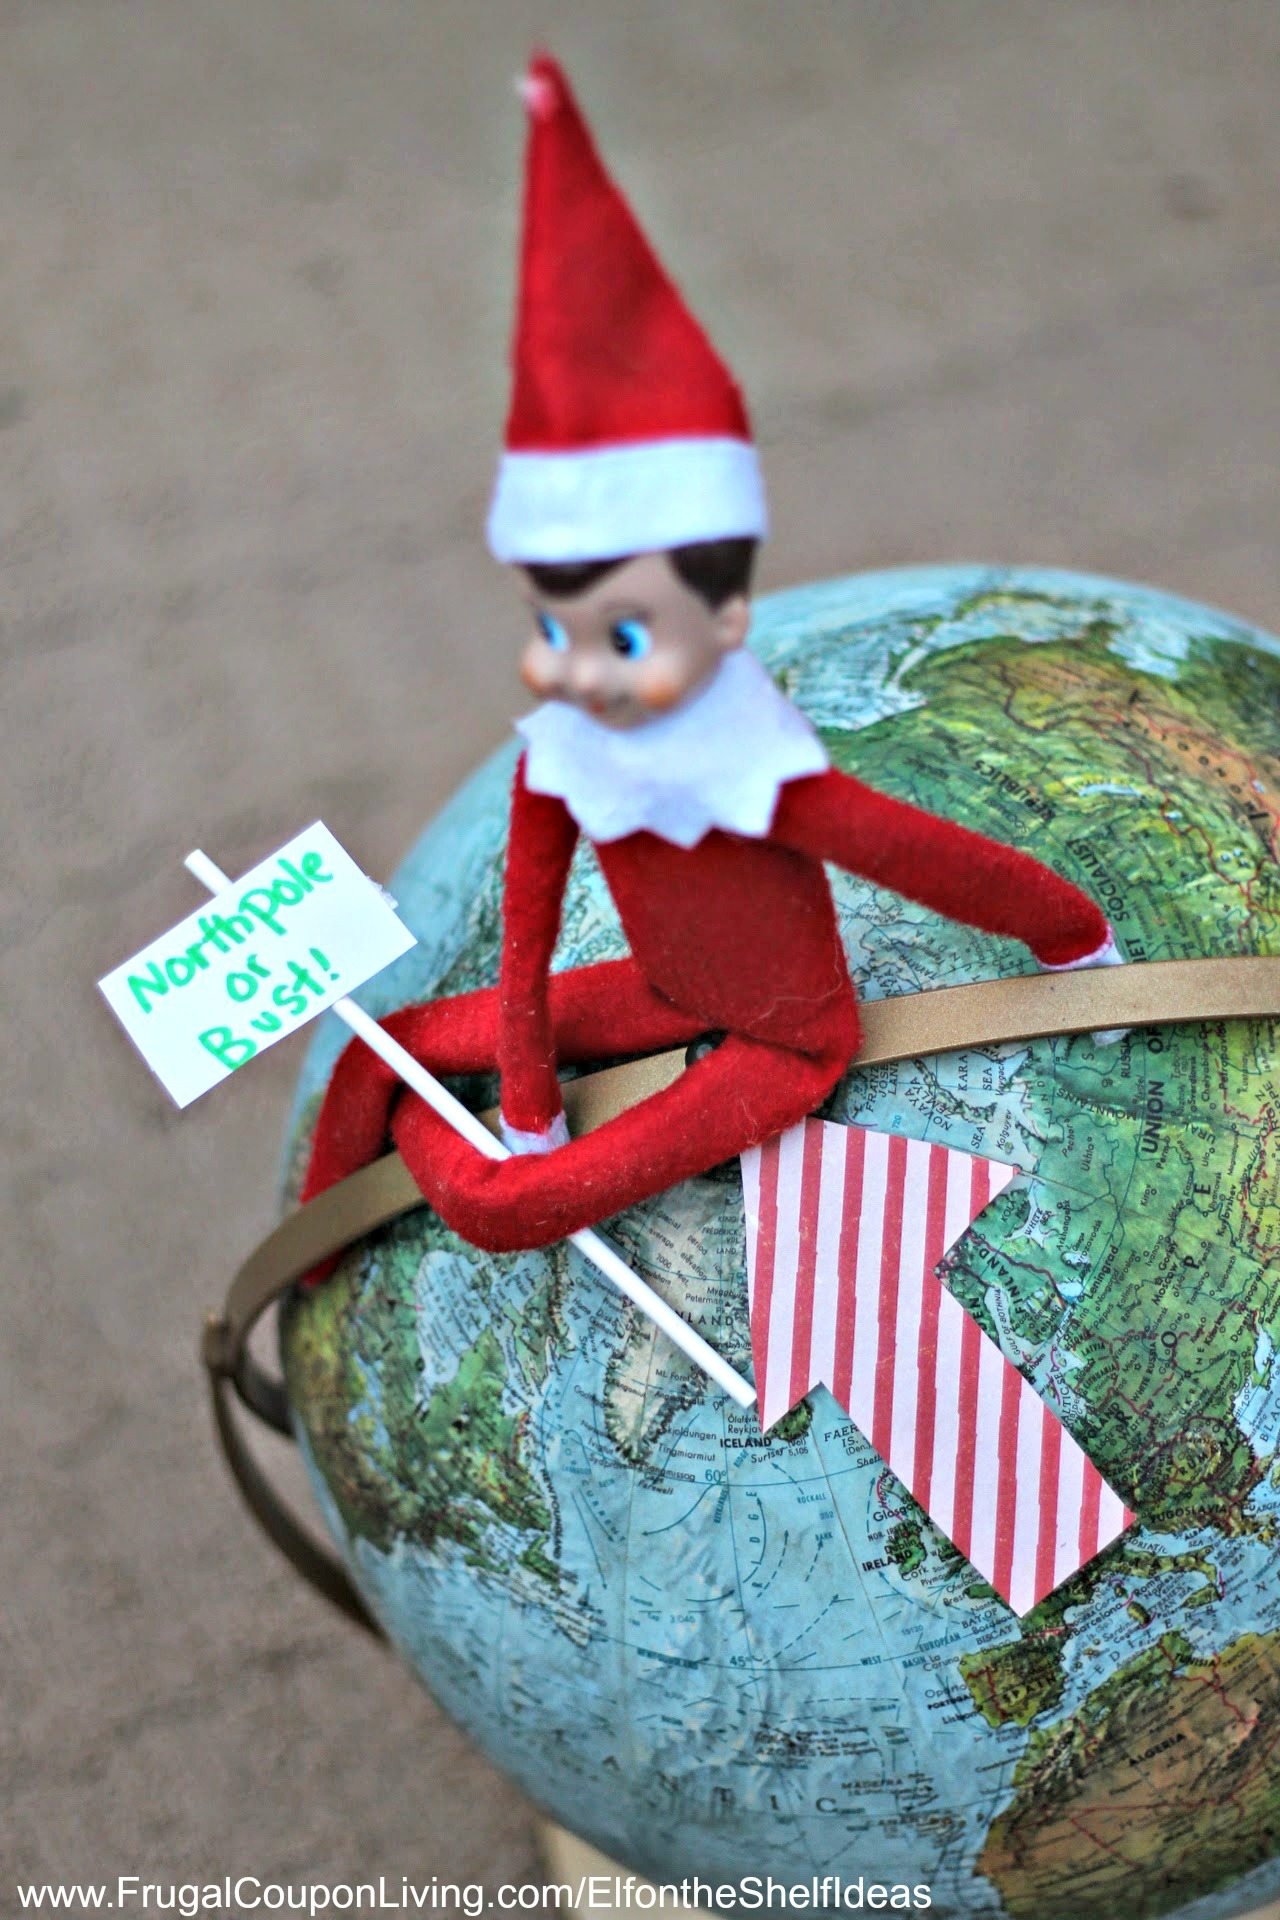 northpole-or-bust-elf on-the-shelf-ideas-frugal-coupon-living